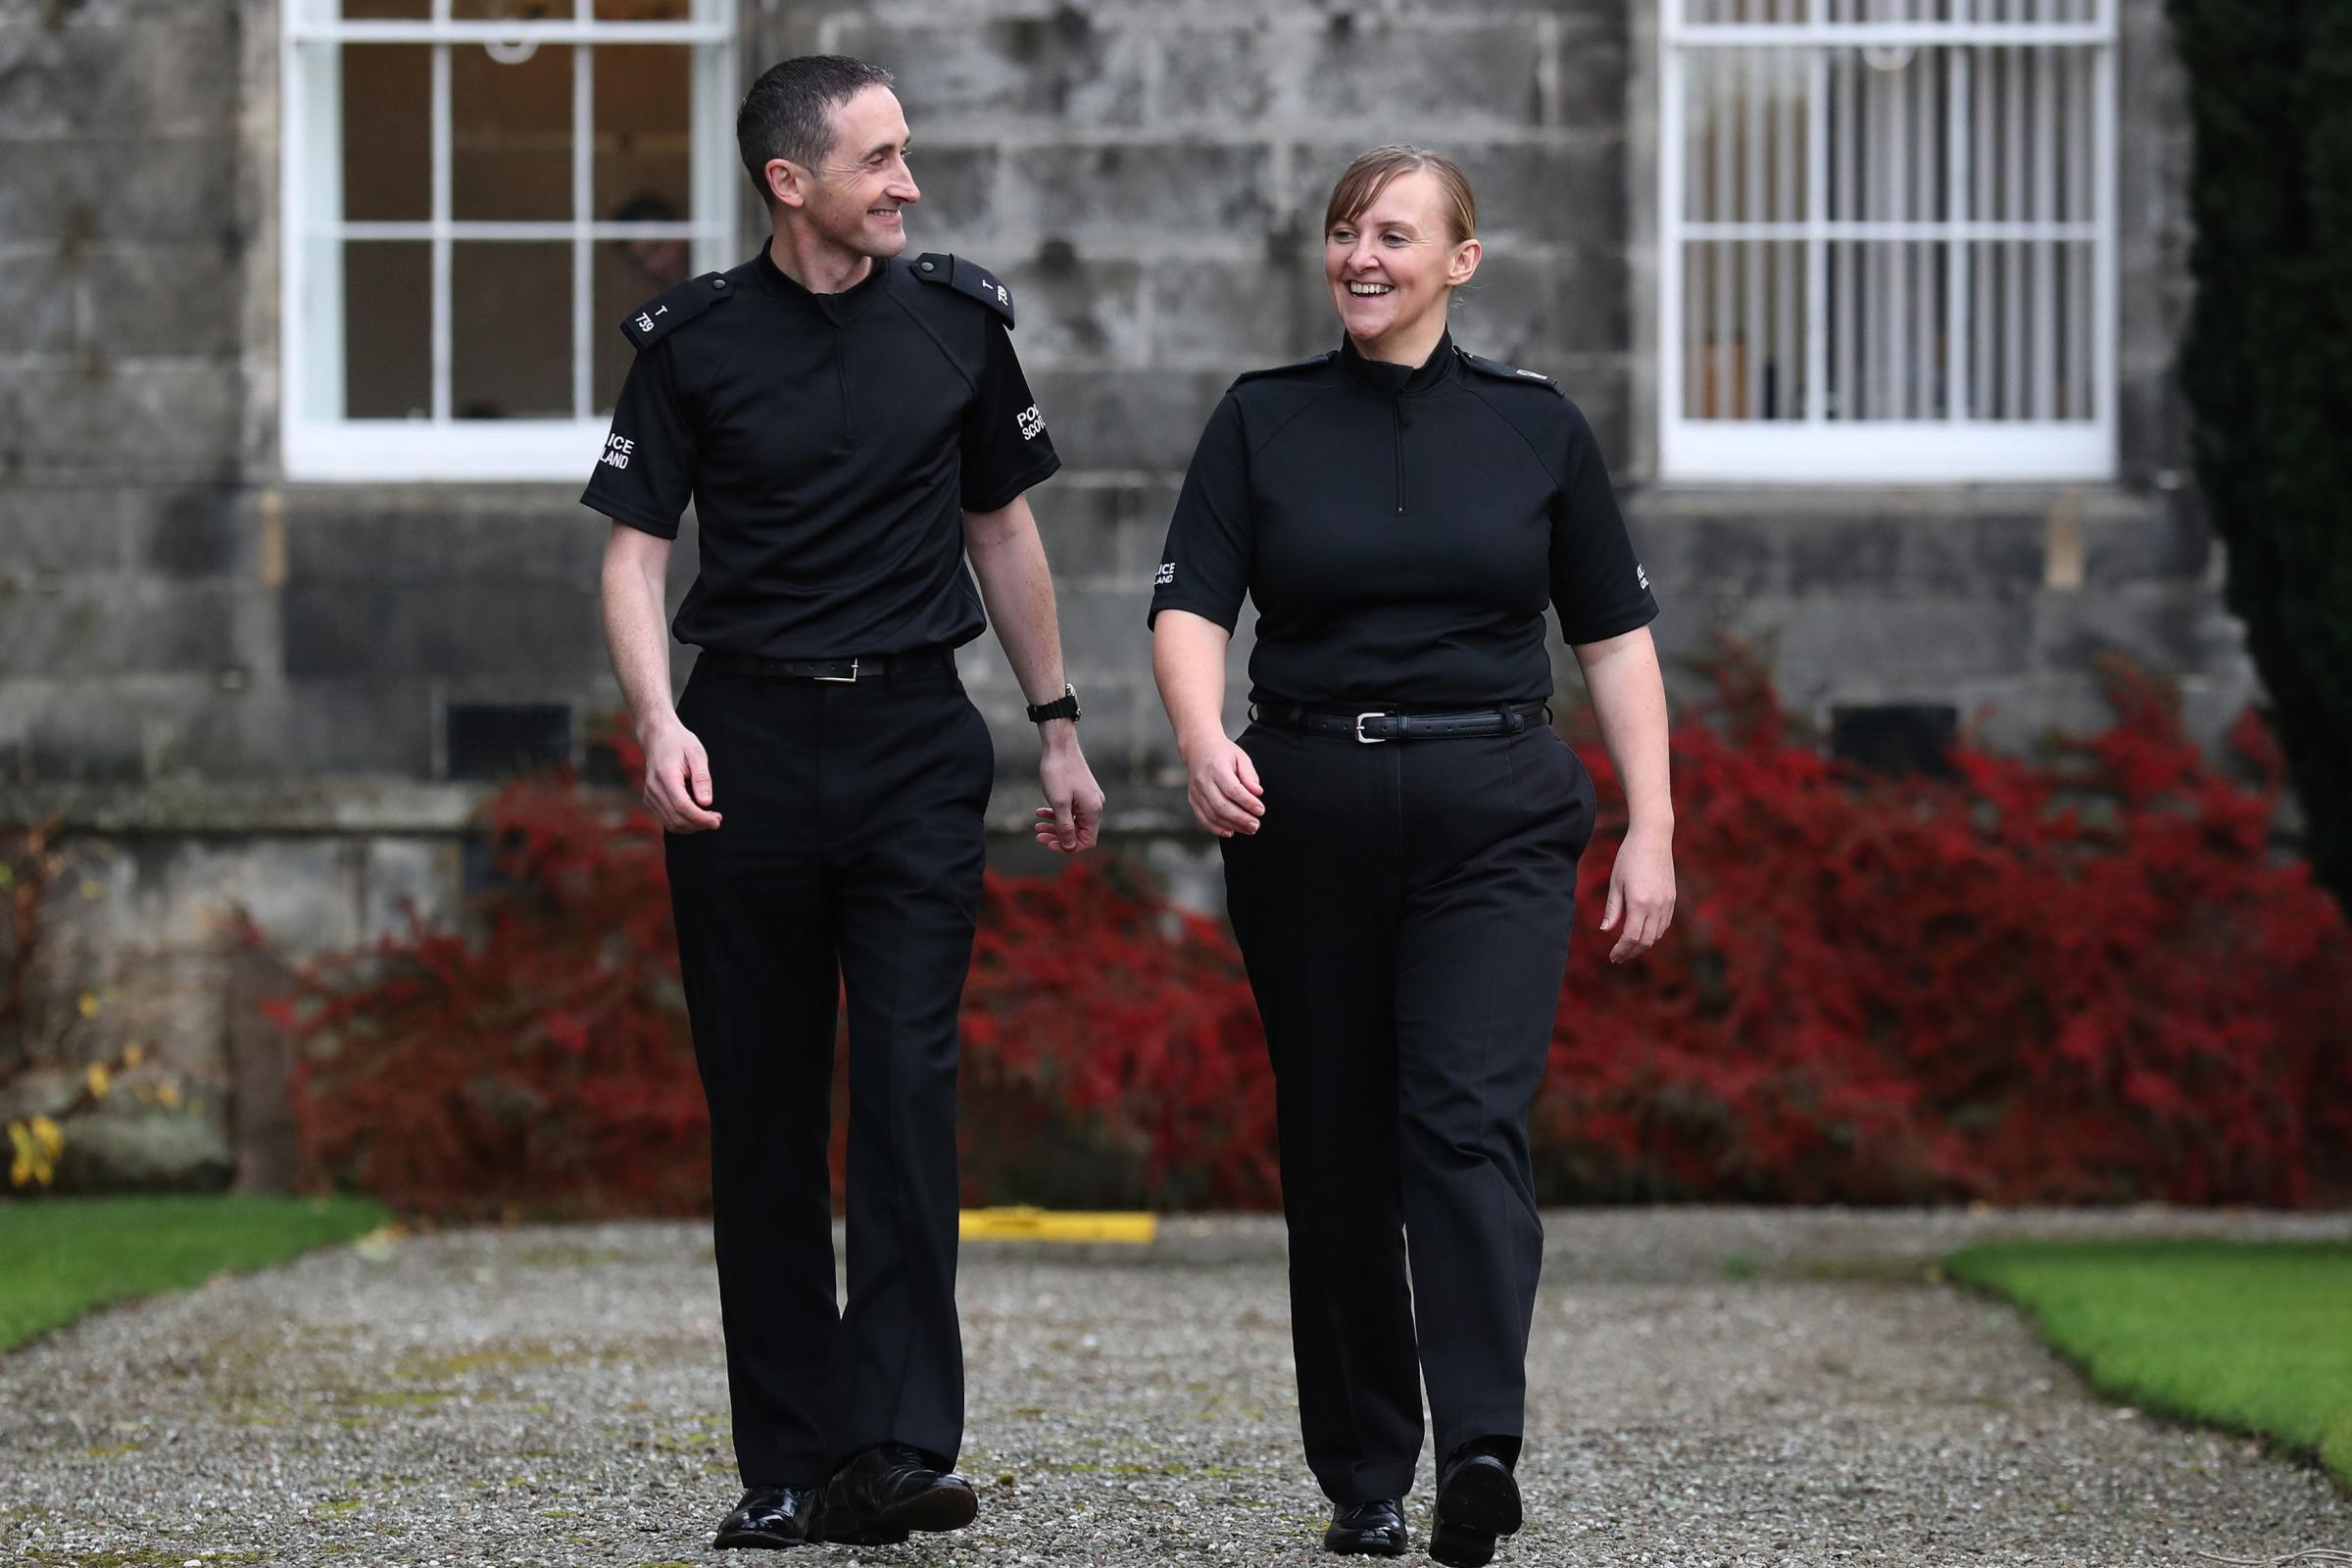 Police constables Laura Sayer and Kenneth MacKenzie